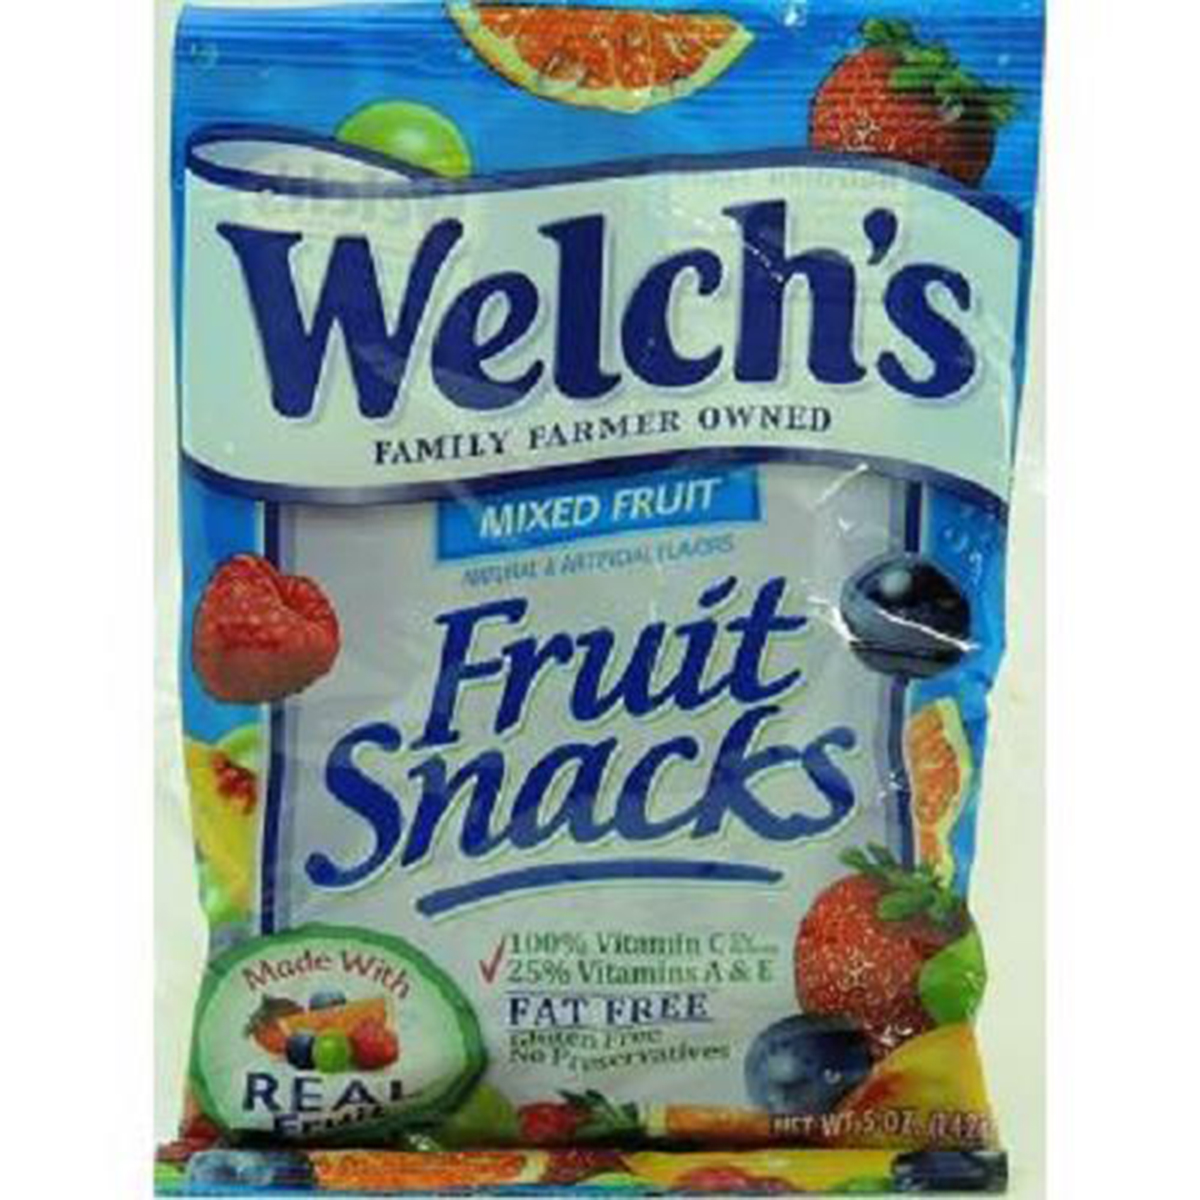 Welchs Mixed Fruit Fruit Snacks, 5-Ounce (Pack of 12)